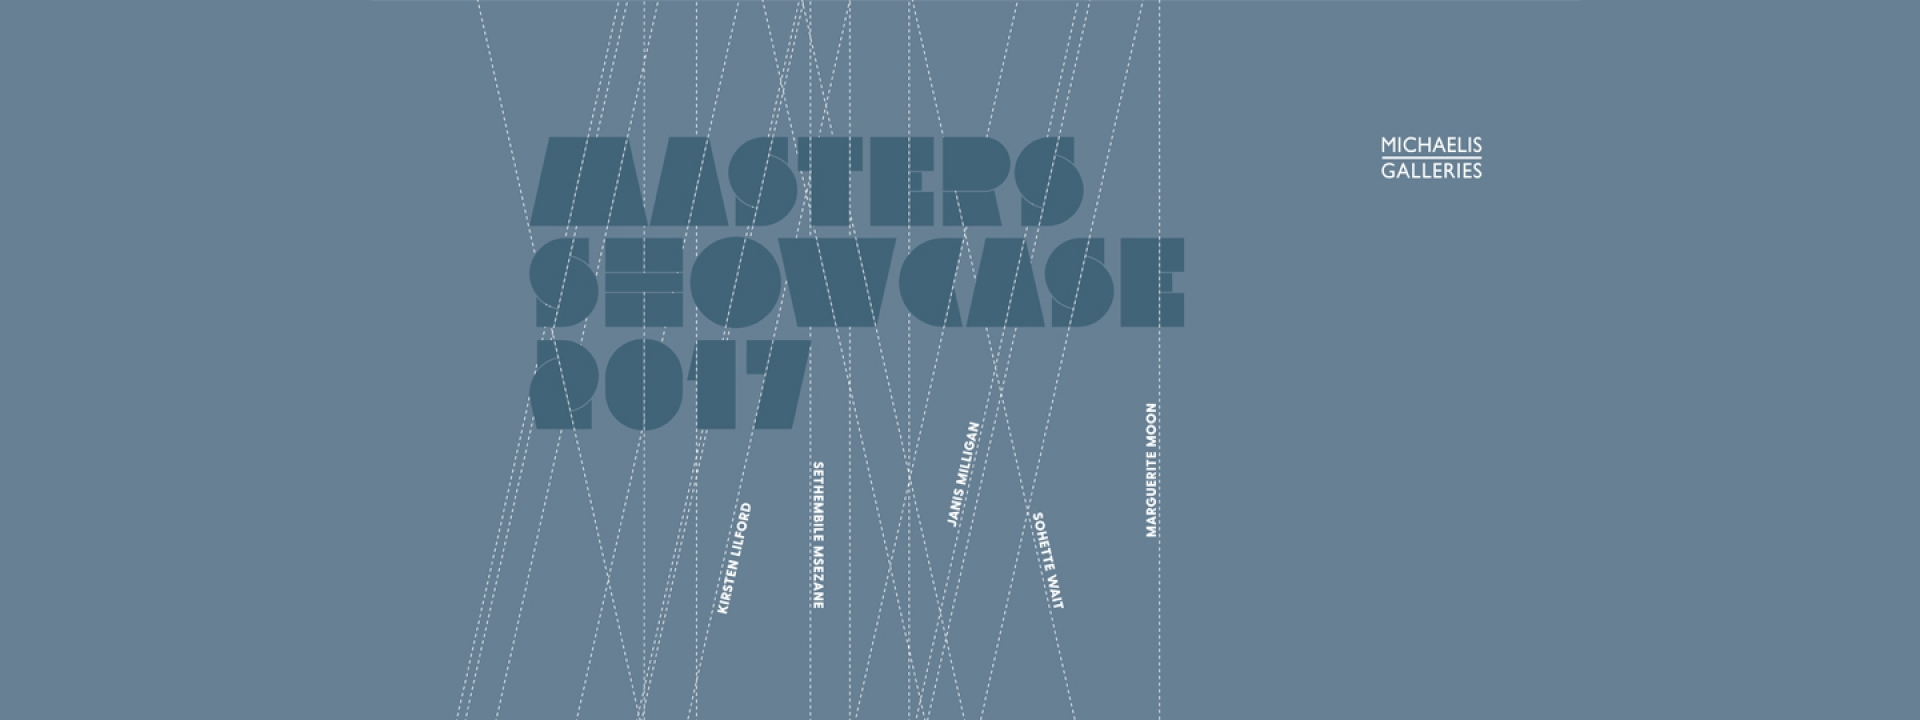 Masters Showcase Exhibition